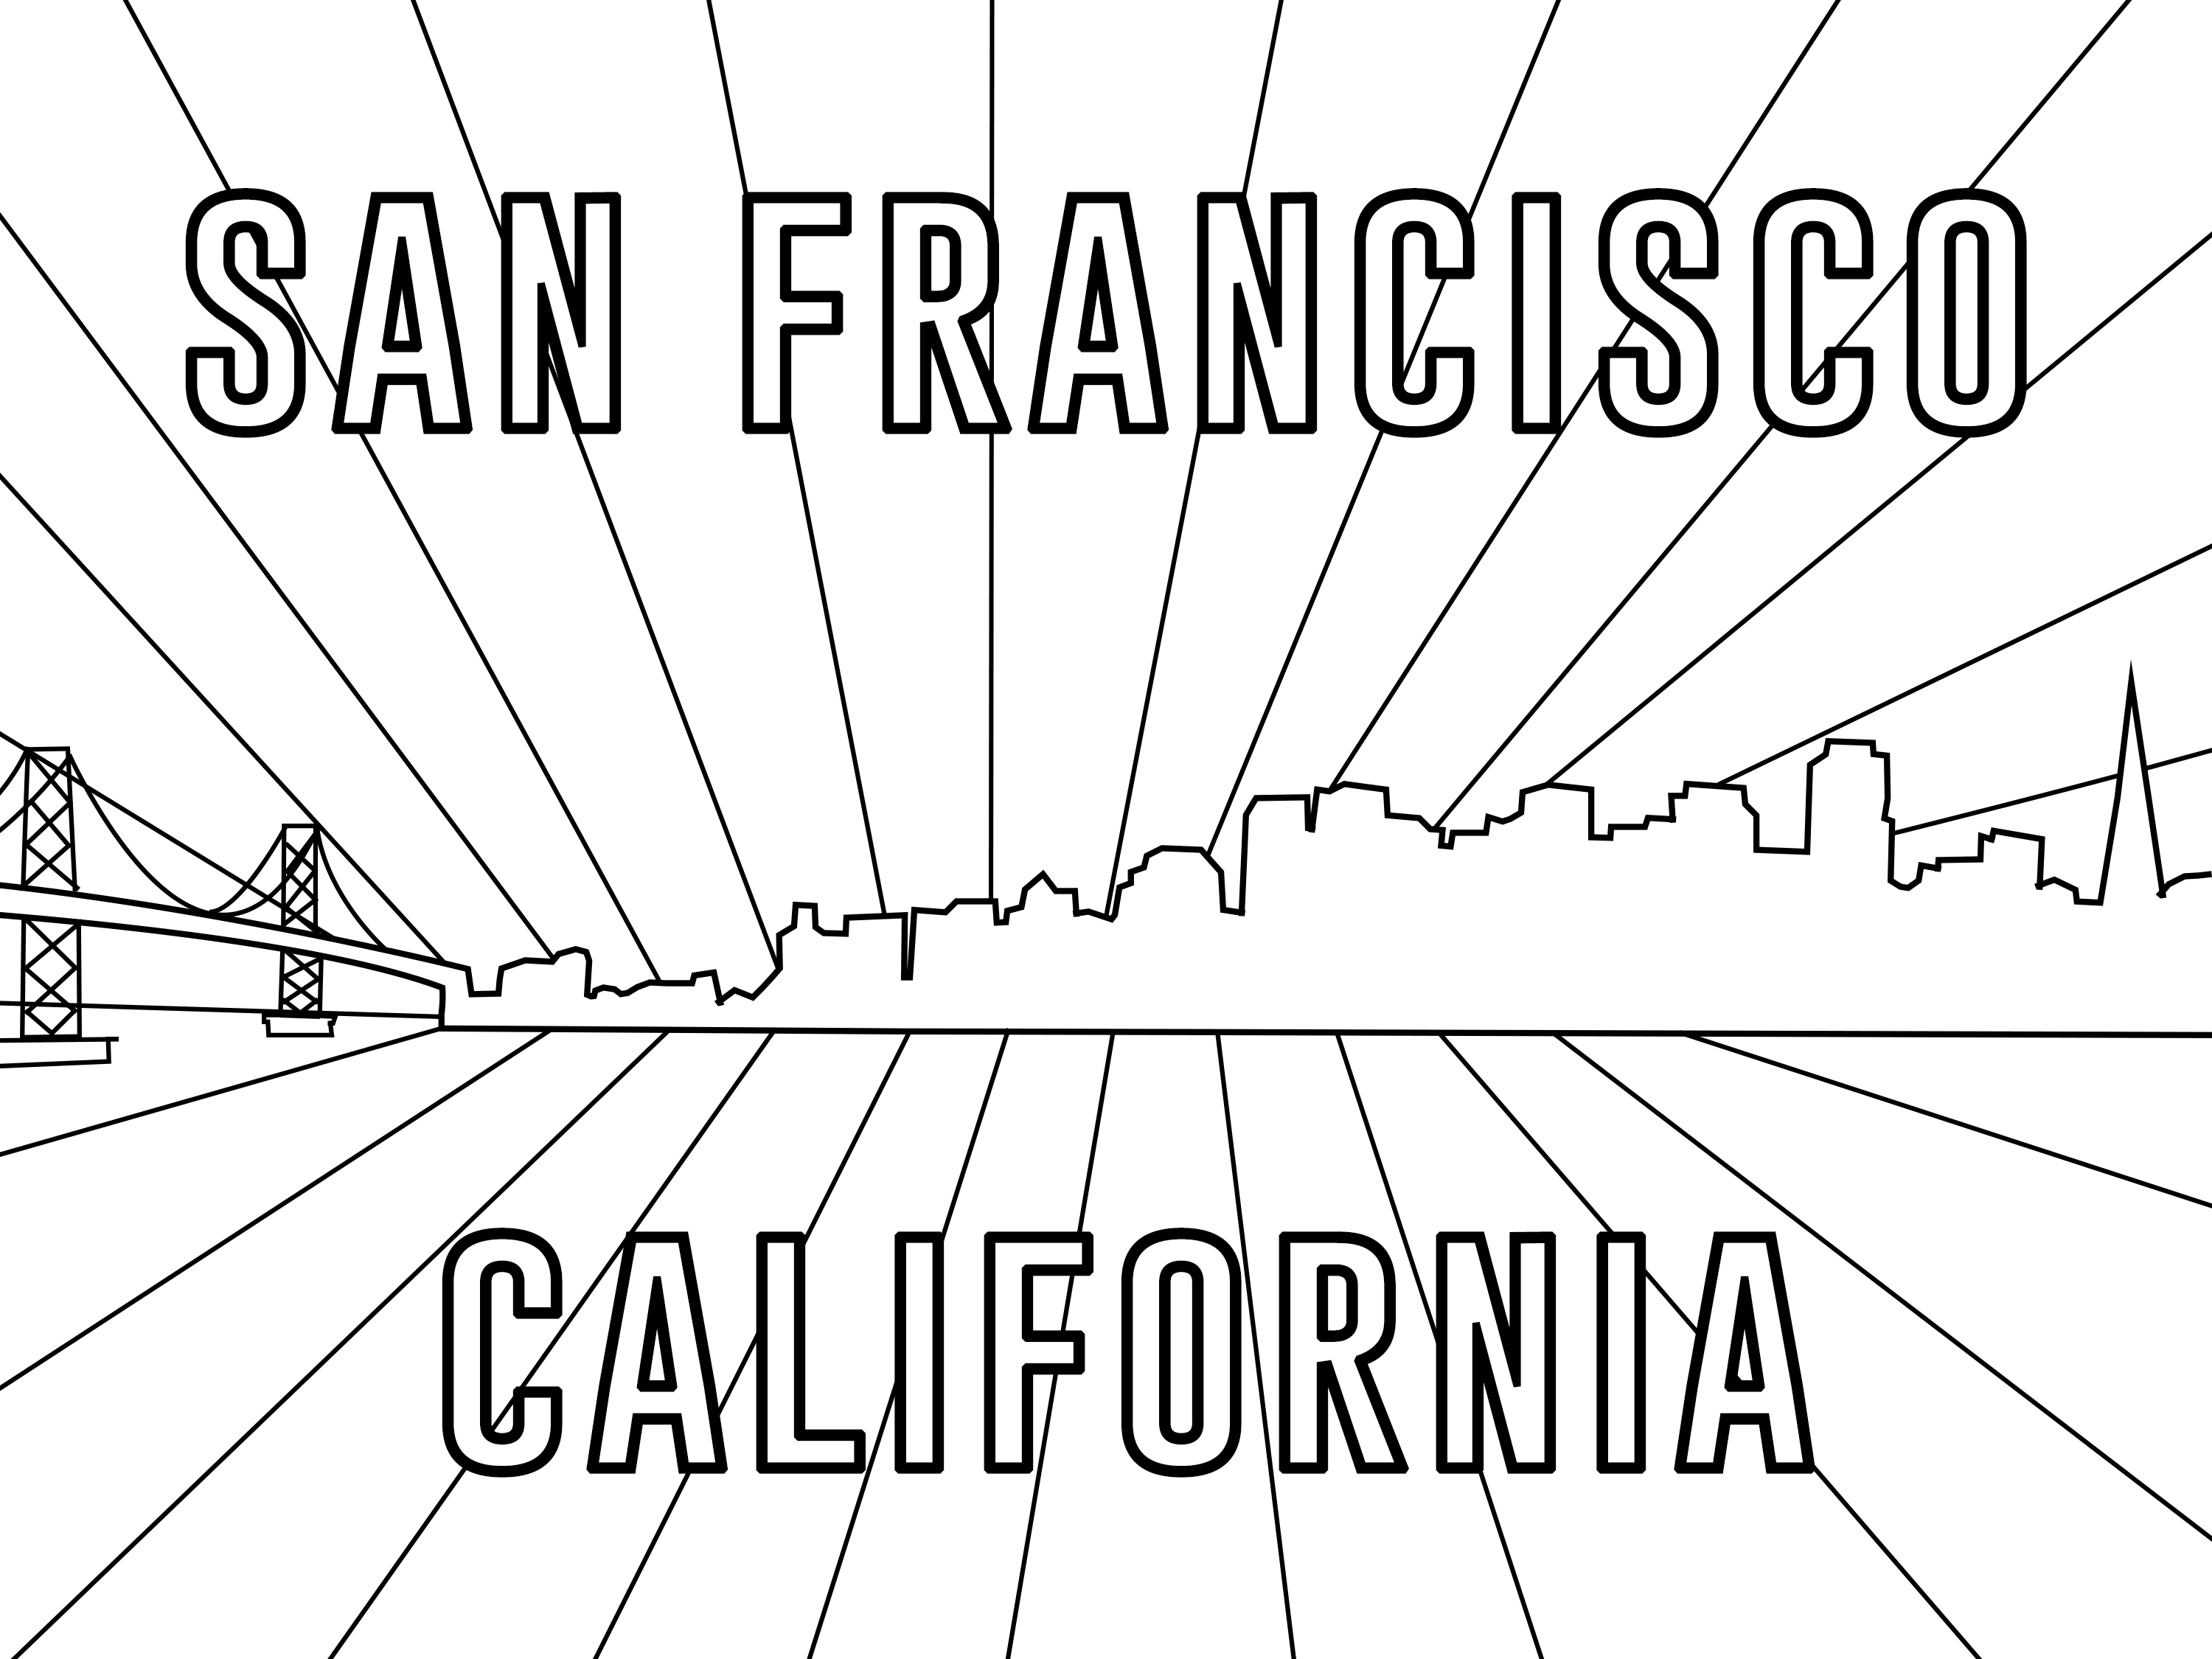 San francisco 49ers free coloring pages for Sf 49ers coloring pages